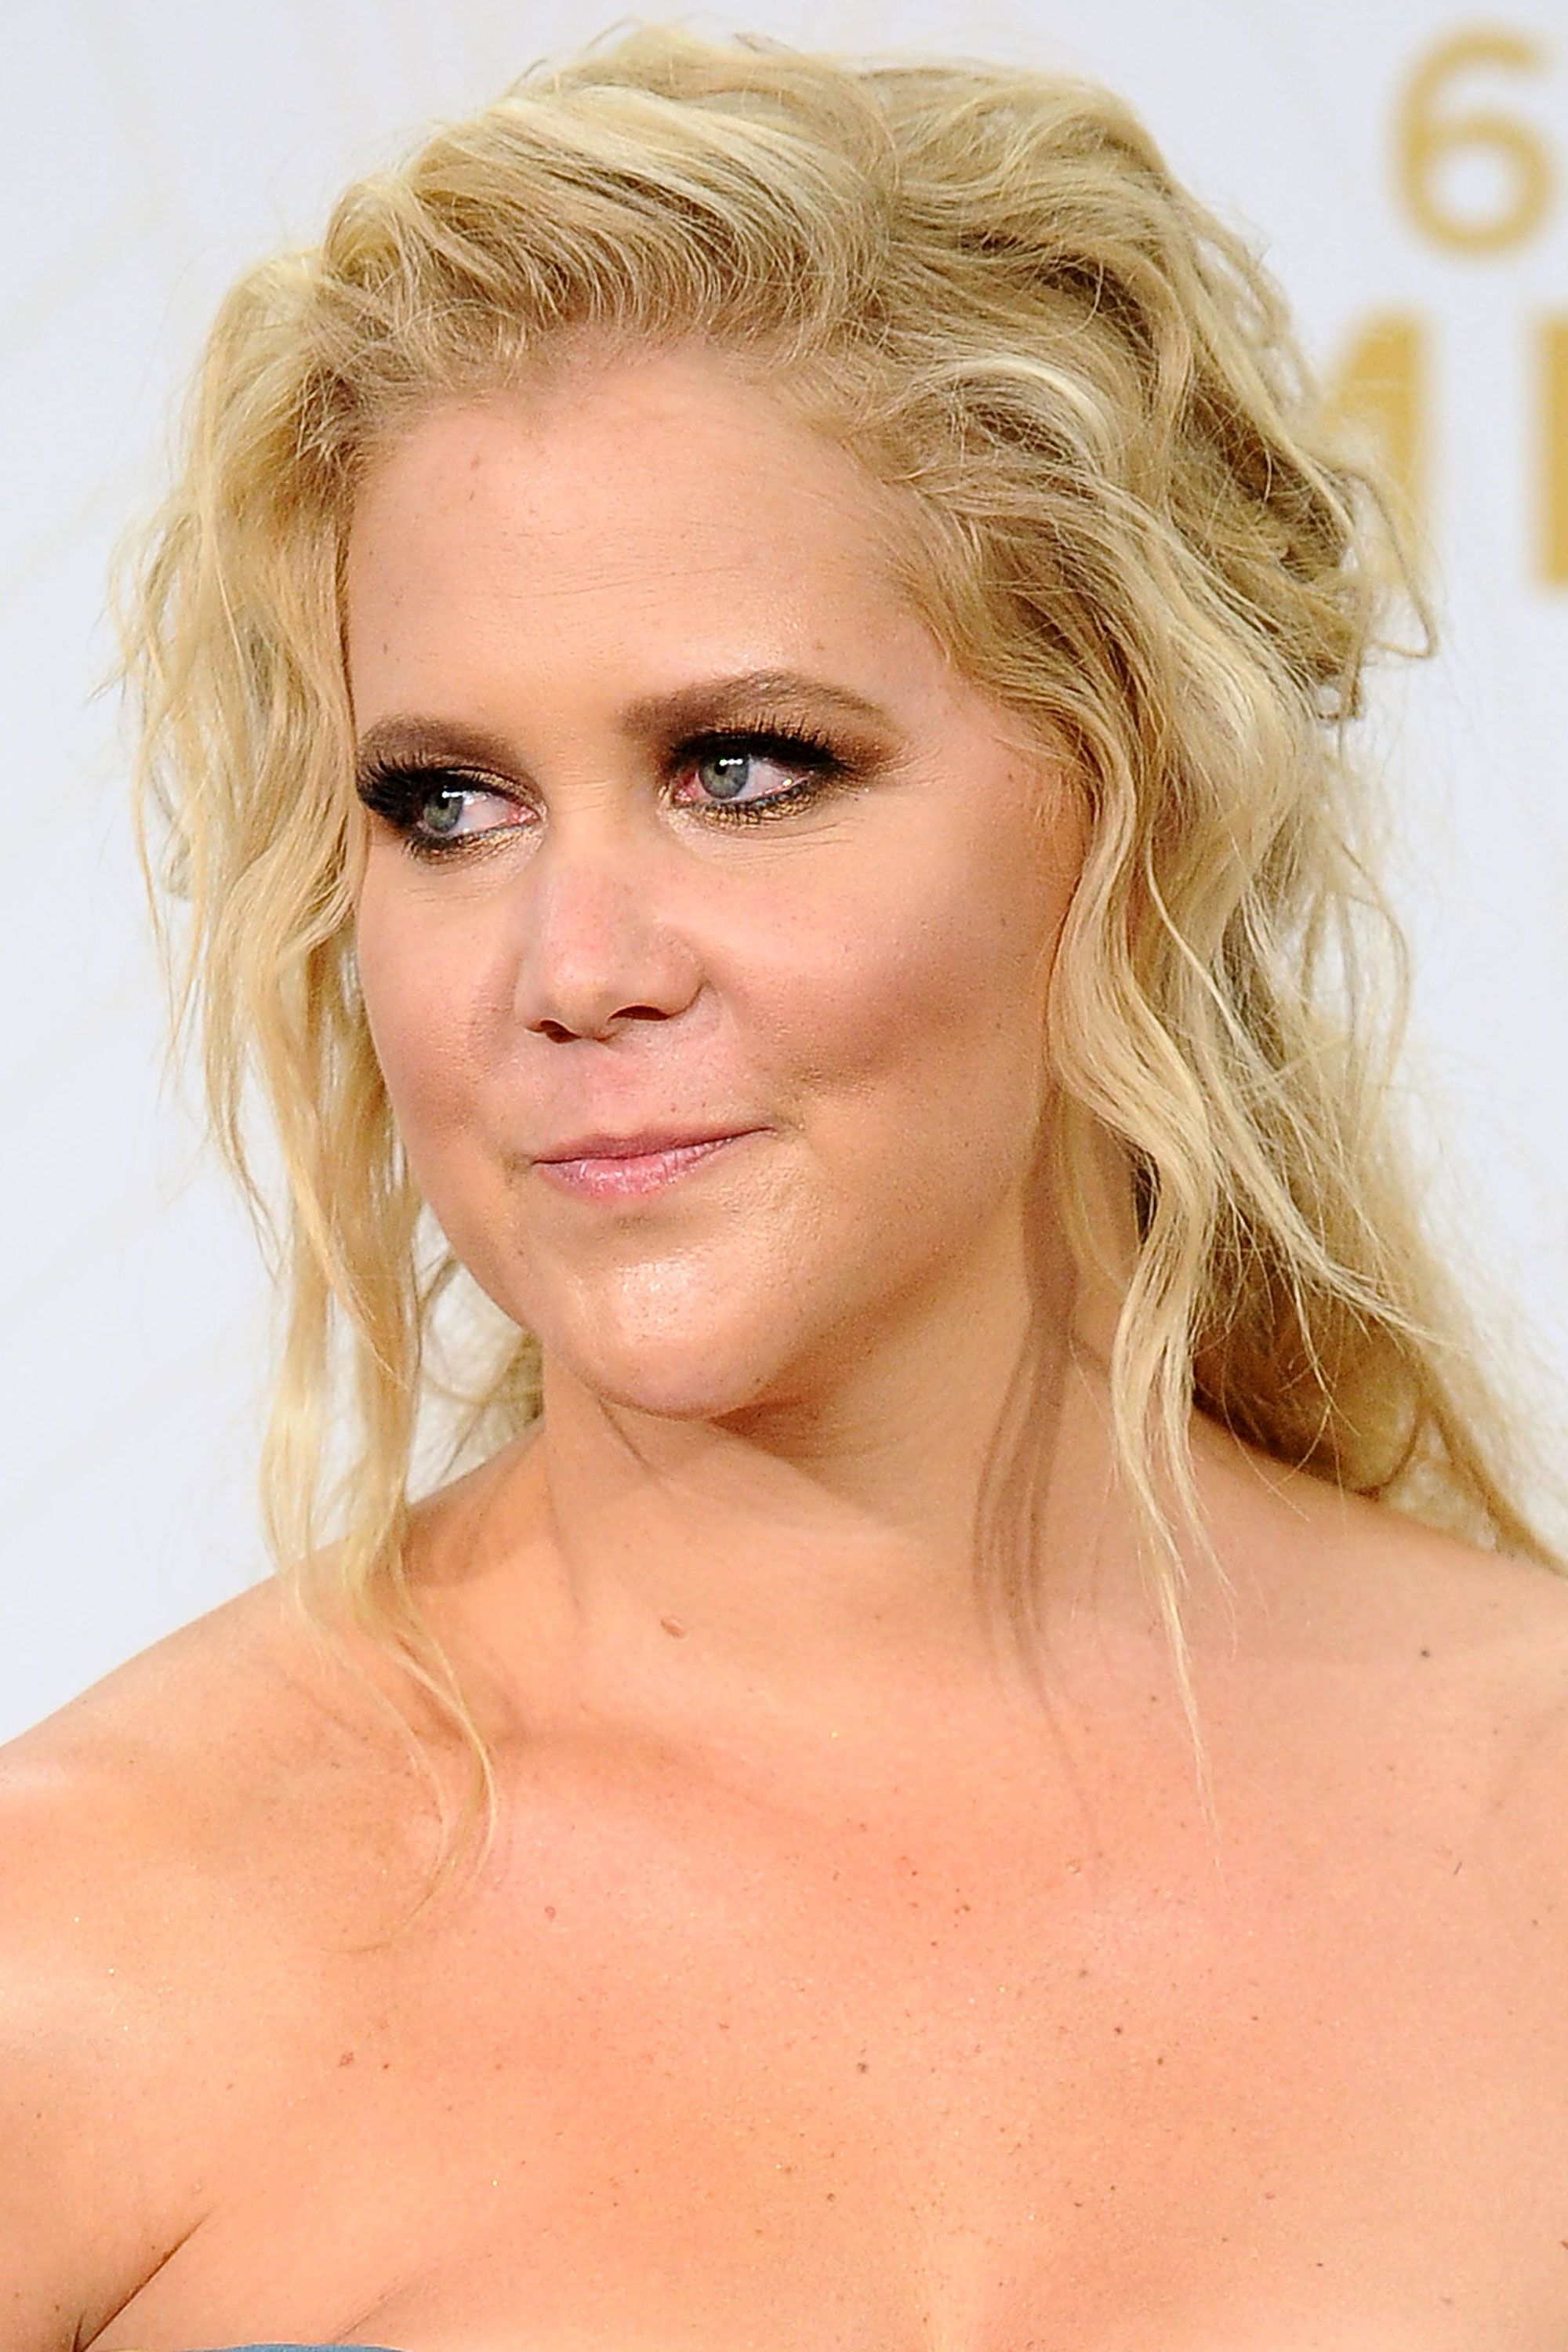 """<p>Okay, so a smoky eye on the red carpet isn't exactly Earth-shattering. But by giving a shout out to <a href=""""http://www.elle.com/beauty/makeup-skin-care/news/a30611/amy-schumer-emmys/"""" target=""""_blank"""">her makeup artist</a>, Amy Schumer acknowledged what we all know but what is rarely mentioned: Celebs are easier on the eyes thanks to the skills of hardworking professionals.   </p>"""